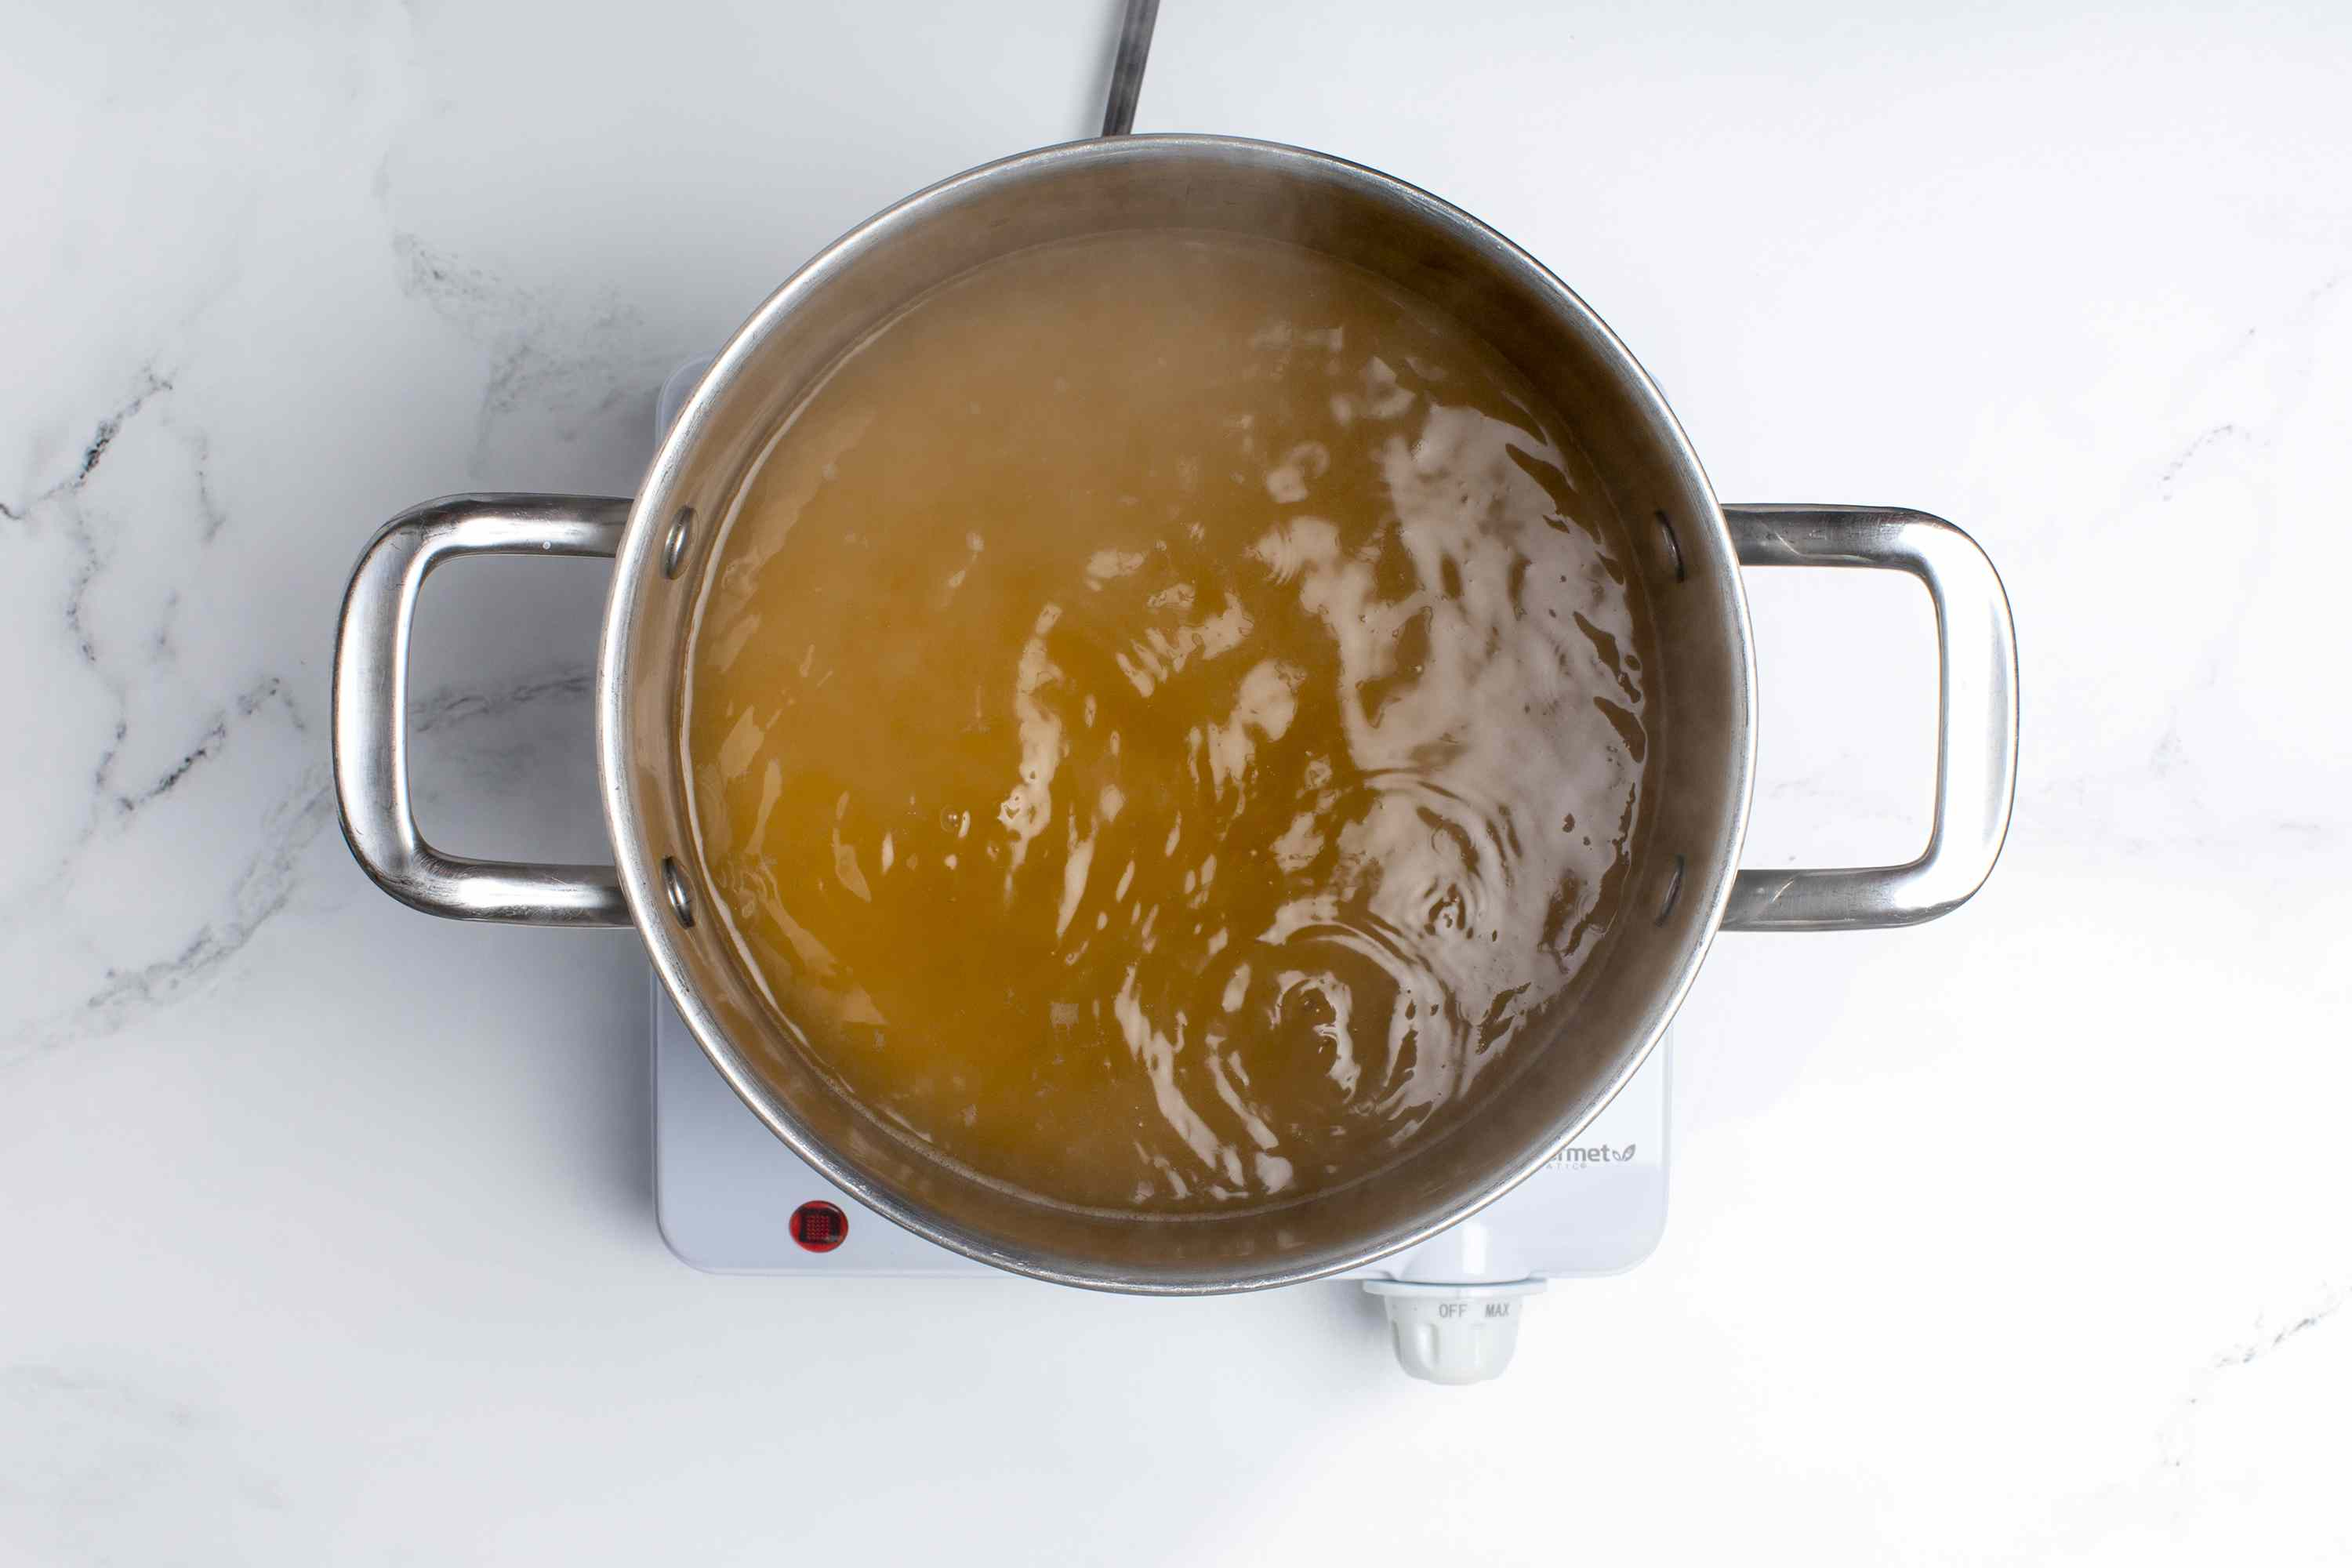 A pot of vegetable stock simmering